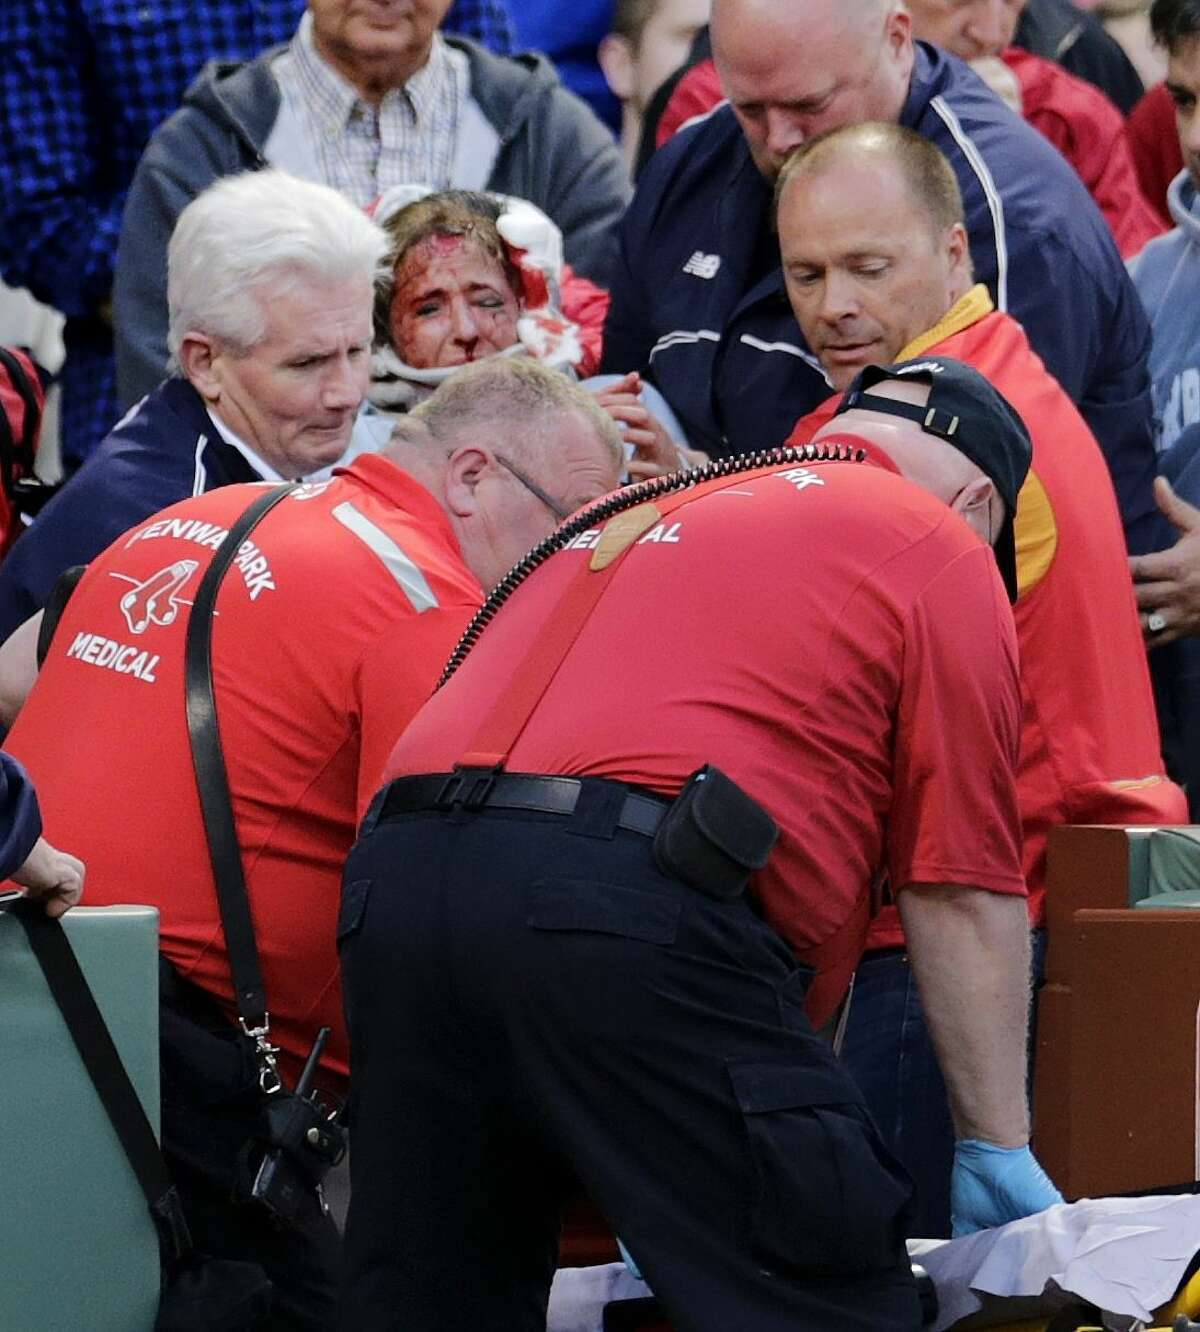 A fan, who was hit in the head with a broken bat by the Oakland Athletics' Brett Lawrie, is helped from the stands during Friday night's game at Fenway Park in Boston.